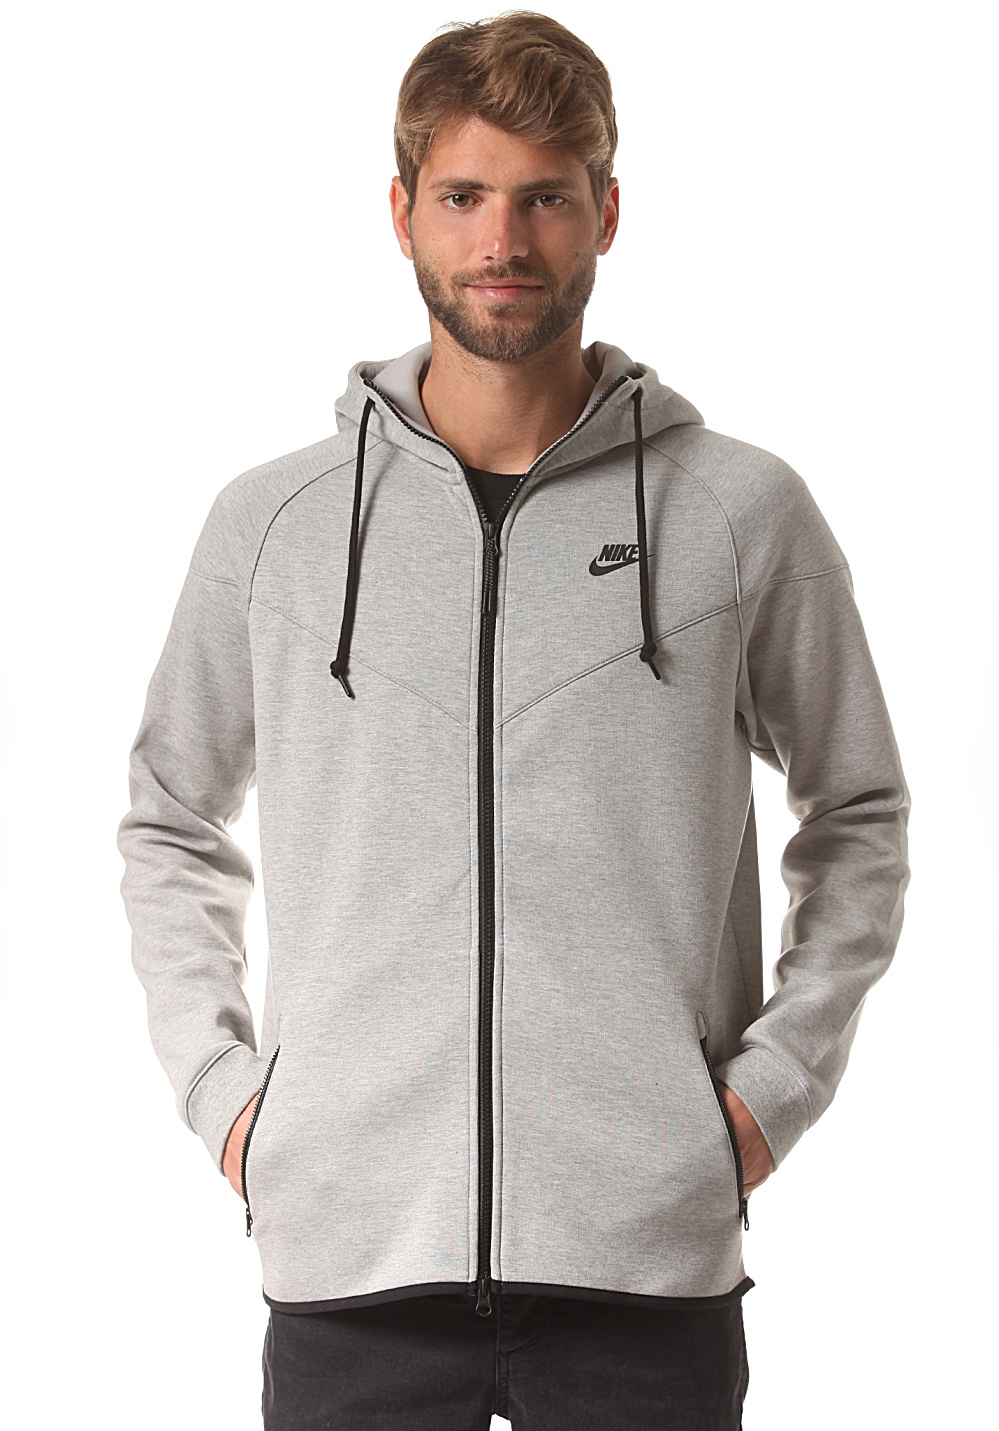 nike sportswear tech fleece veste capuche pour homme gris planet sports. Black Bedroom Furniture Sets. Home Design Ideas